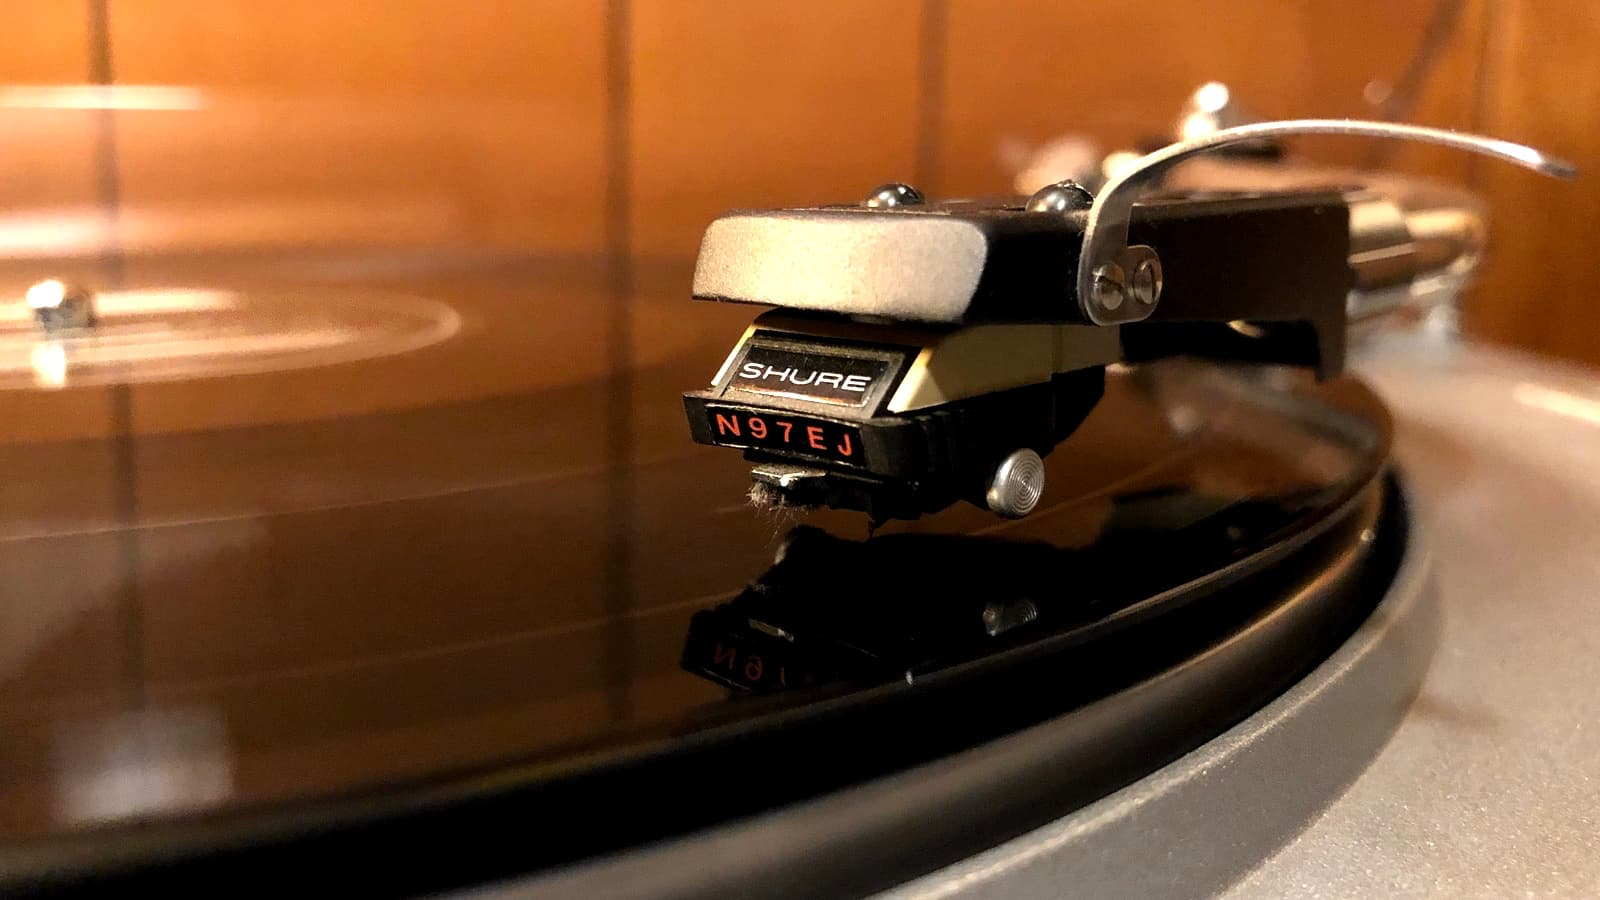 Shure N97EJ Phono Cartridge on Turntable